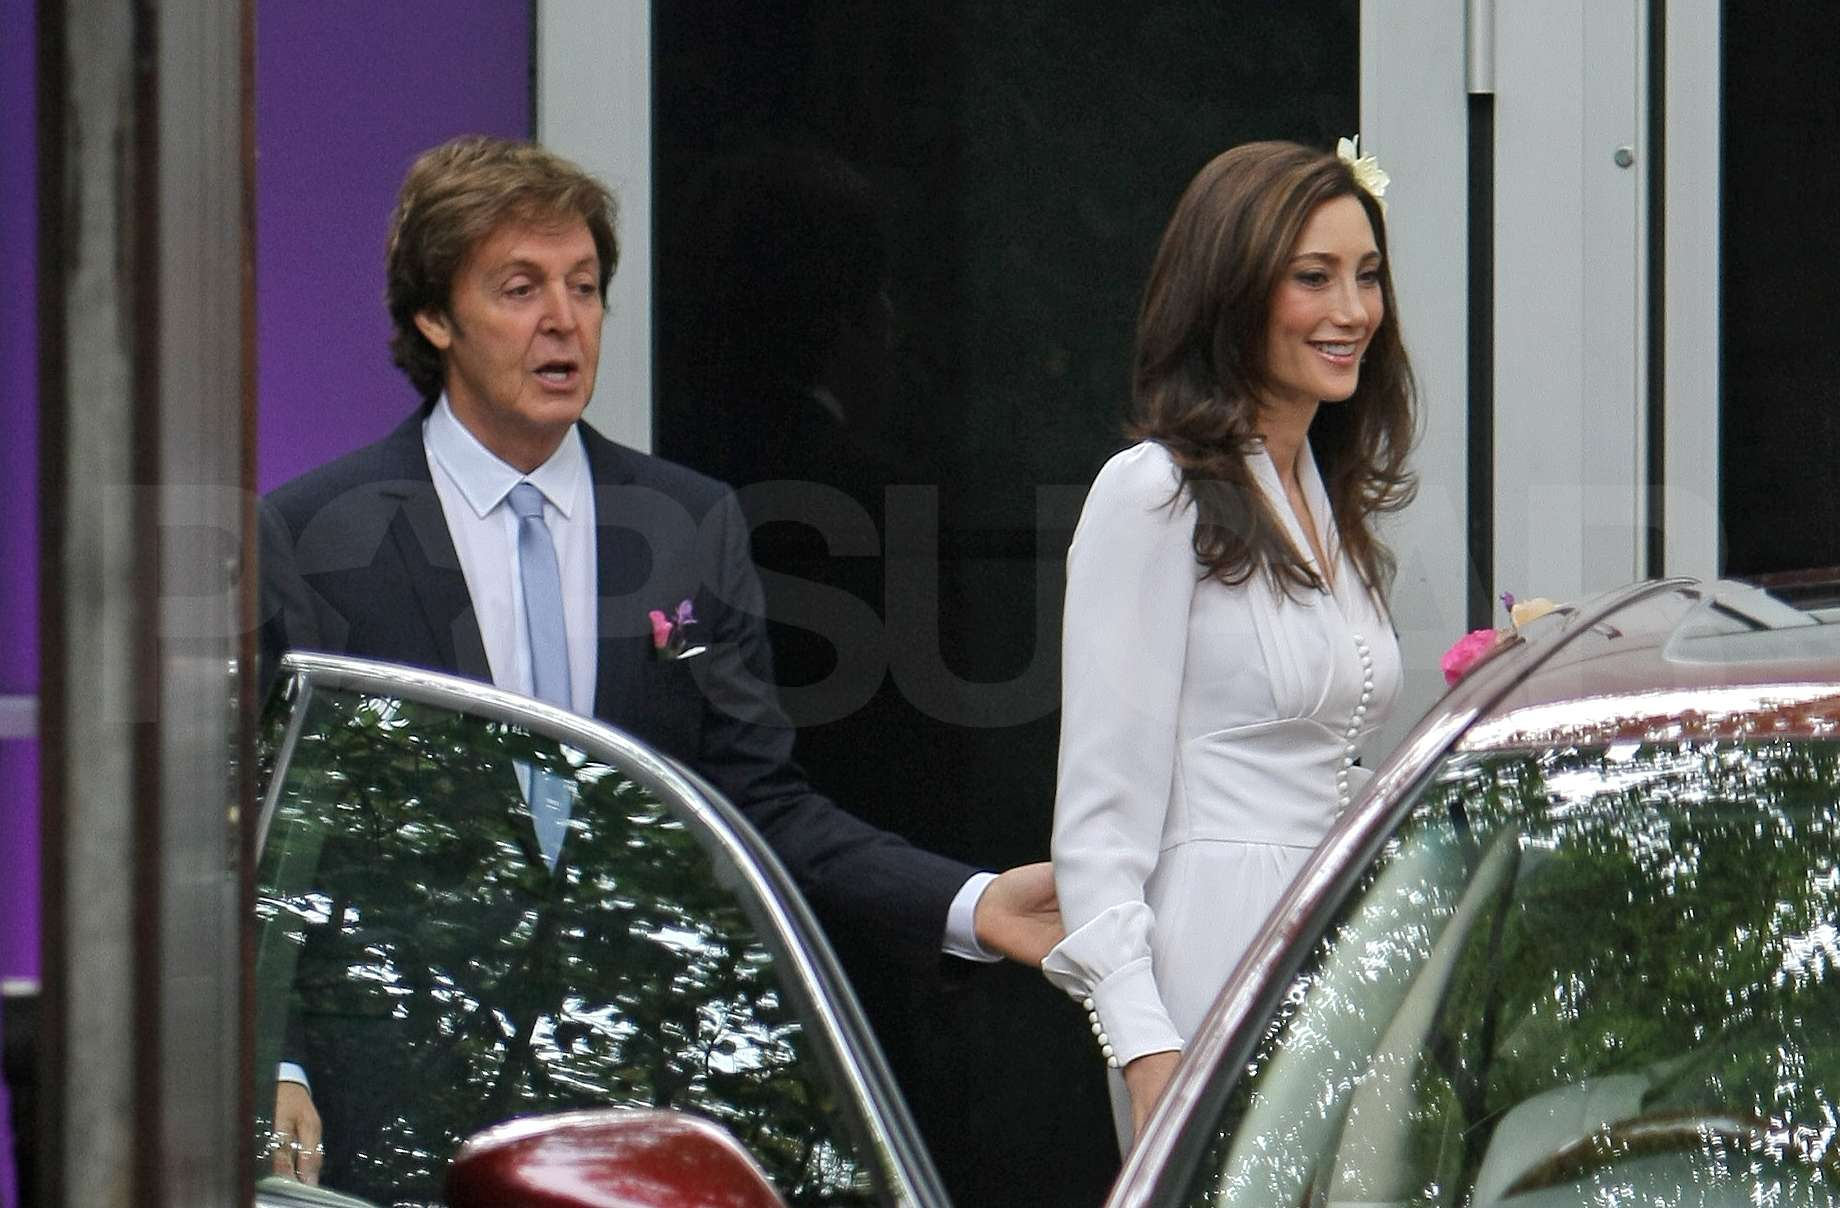 Paul and his wife Nancy stepped out after their wedding.